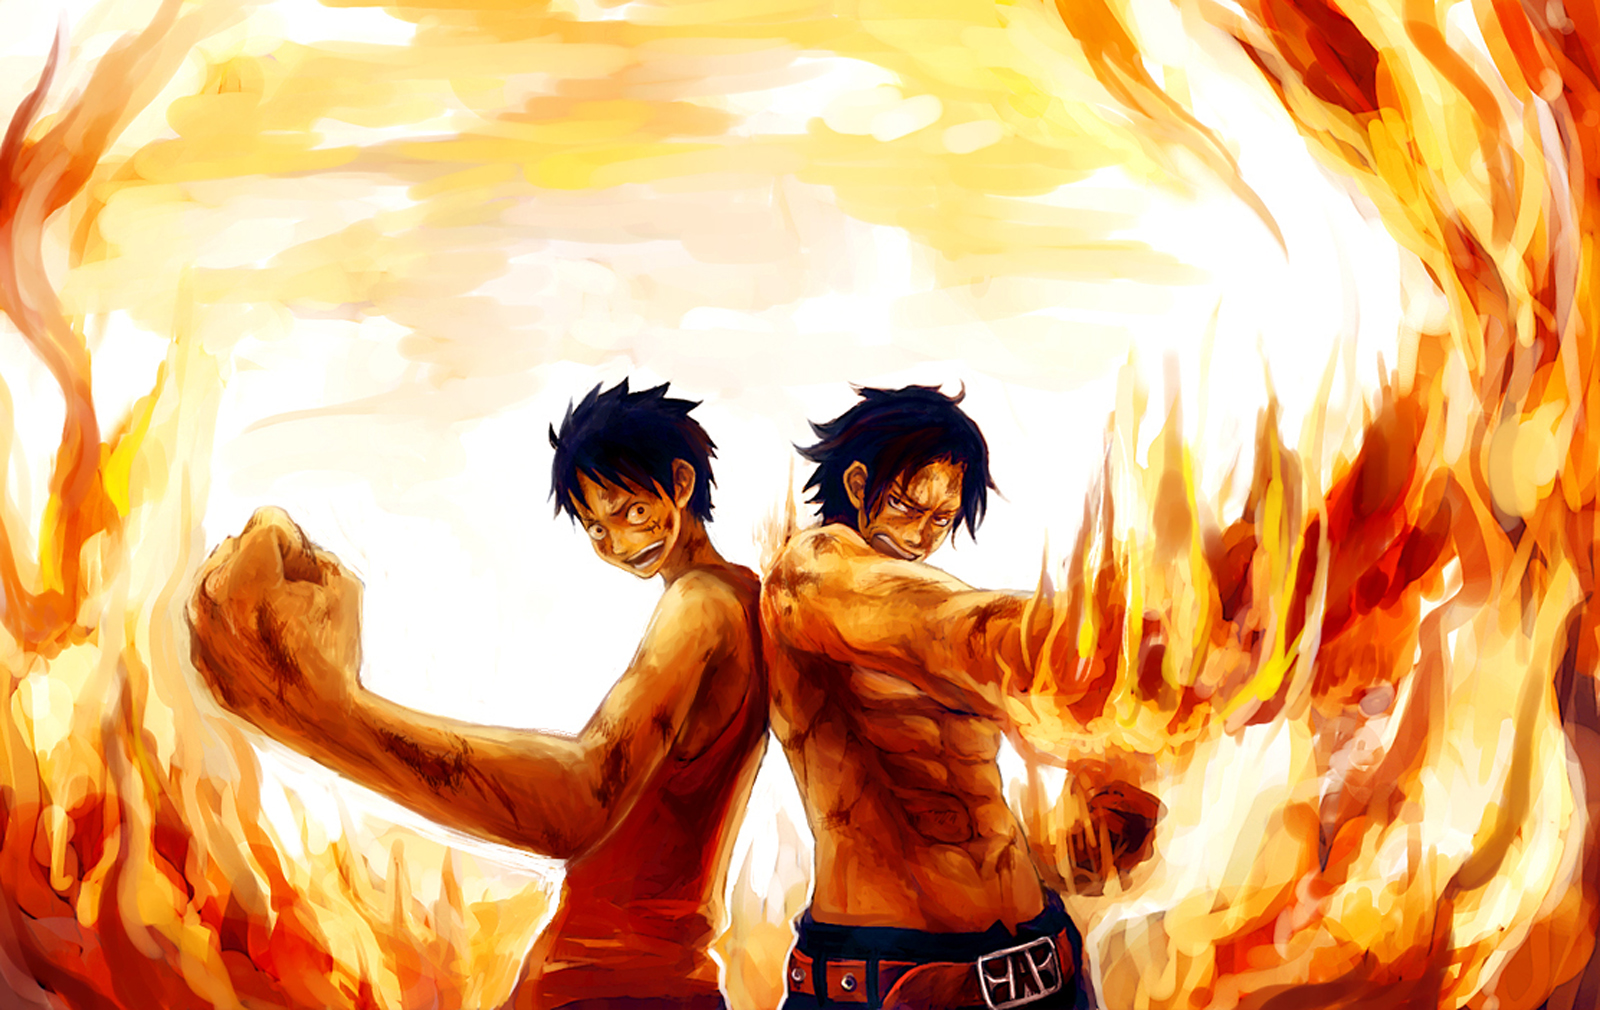 One Piece Ace Portgas d ace wallpape...